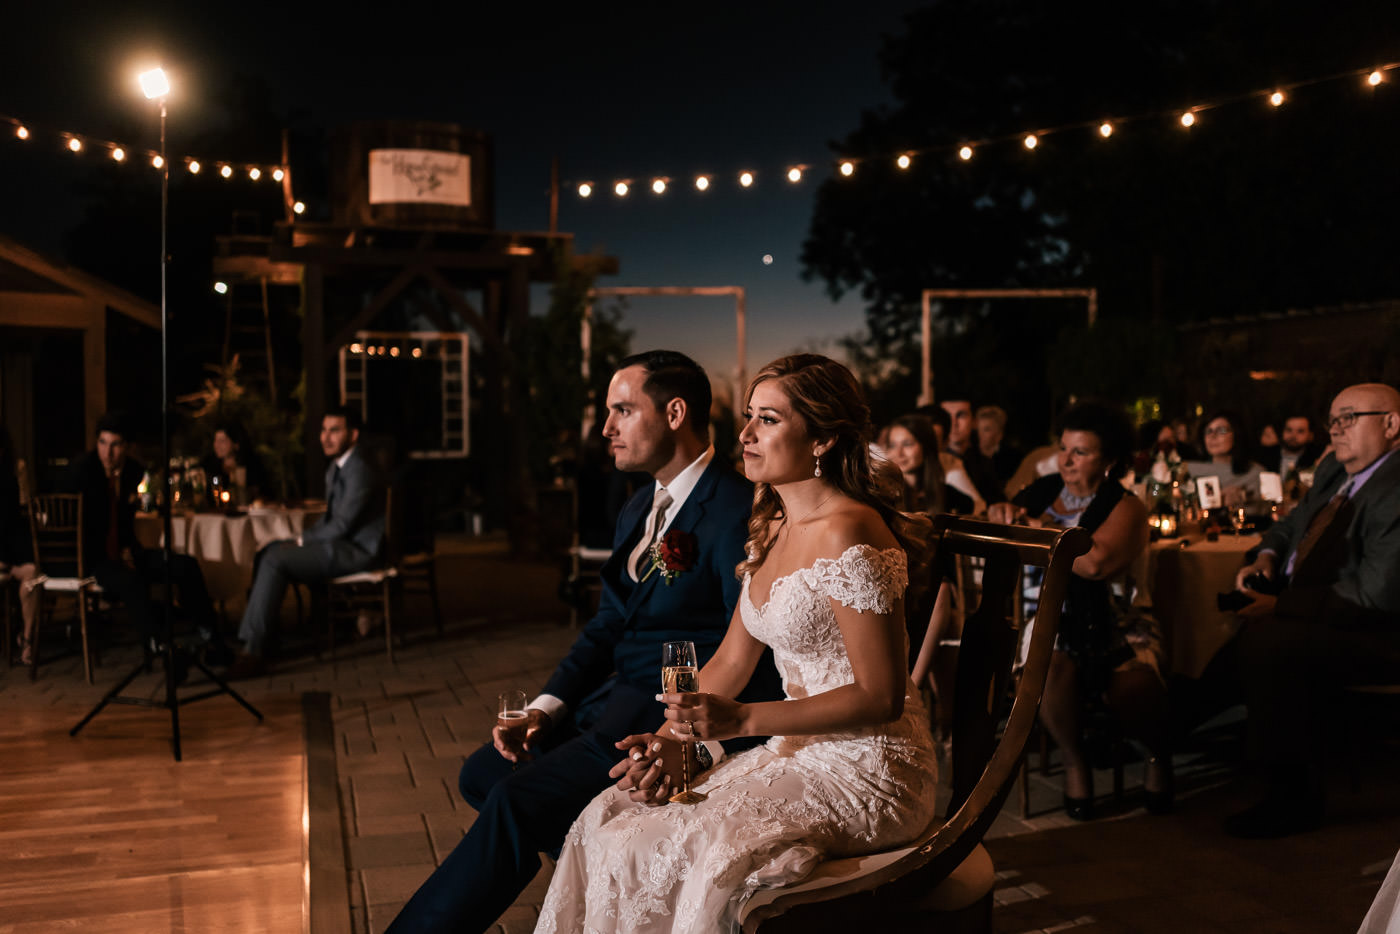 Newlyweds listen intently to the speeches at their reception.